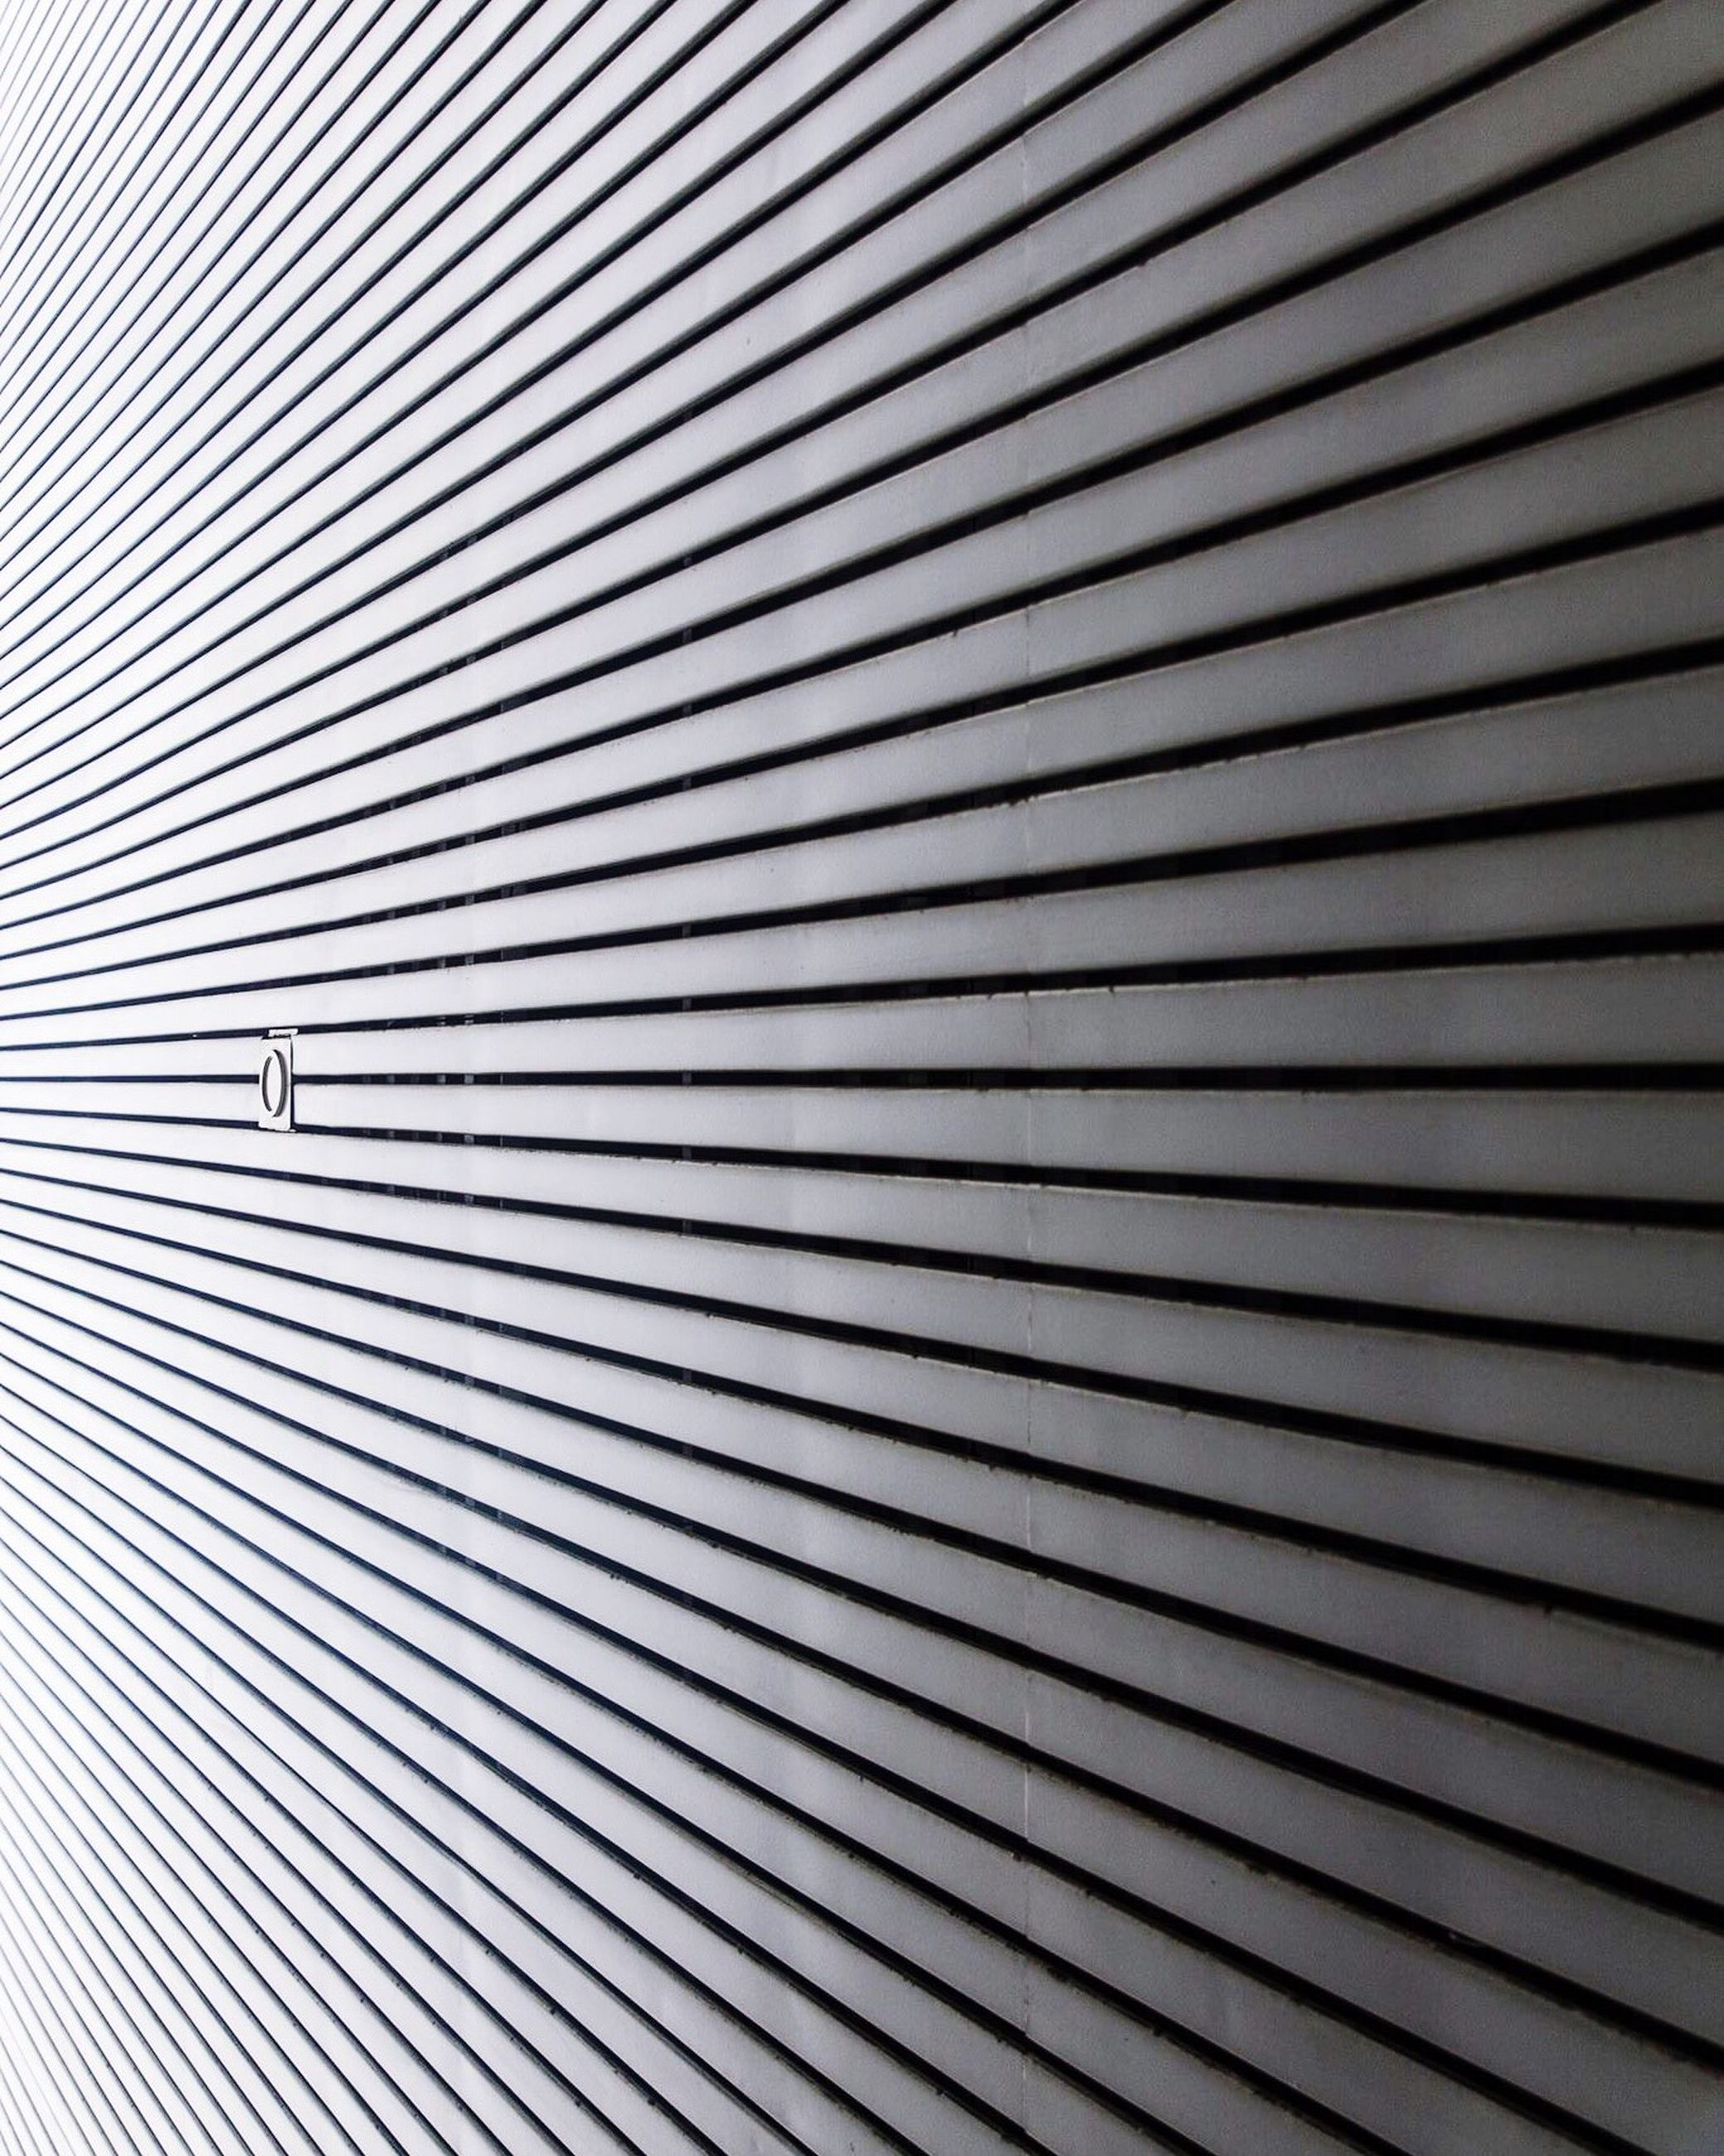 pattern, full frame, backgrounds, indoors, design, textured, repetition, wall - building feature, close-up, architecture, blinds, built structure, no people, wall, protection, metal, window, striped, day, low angle view